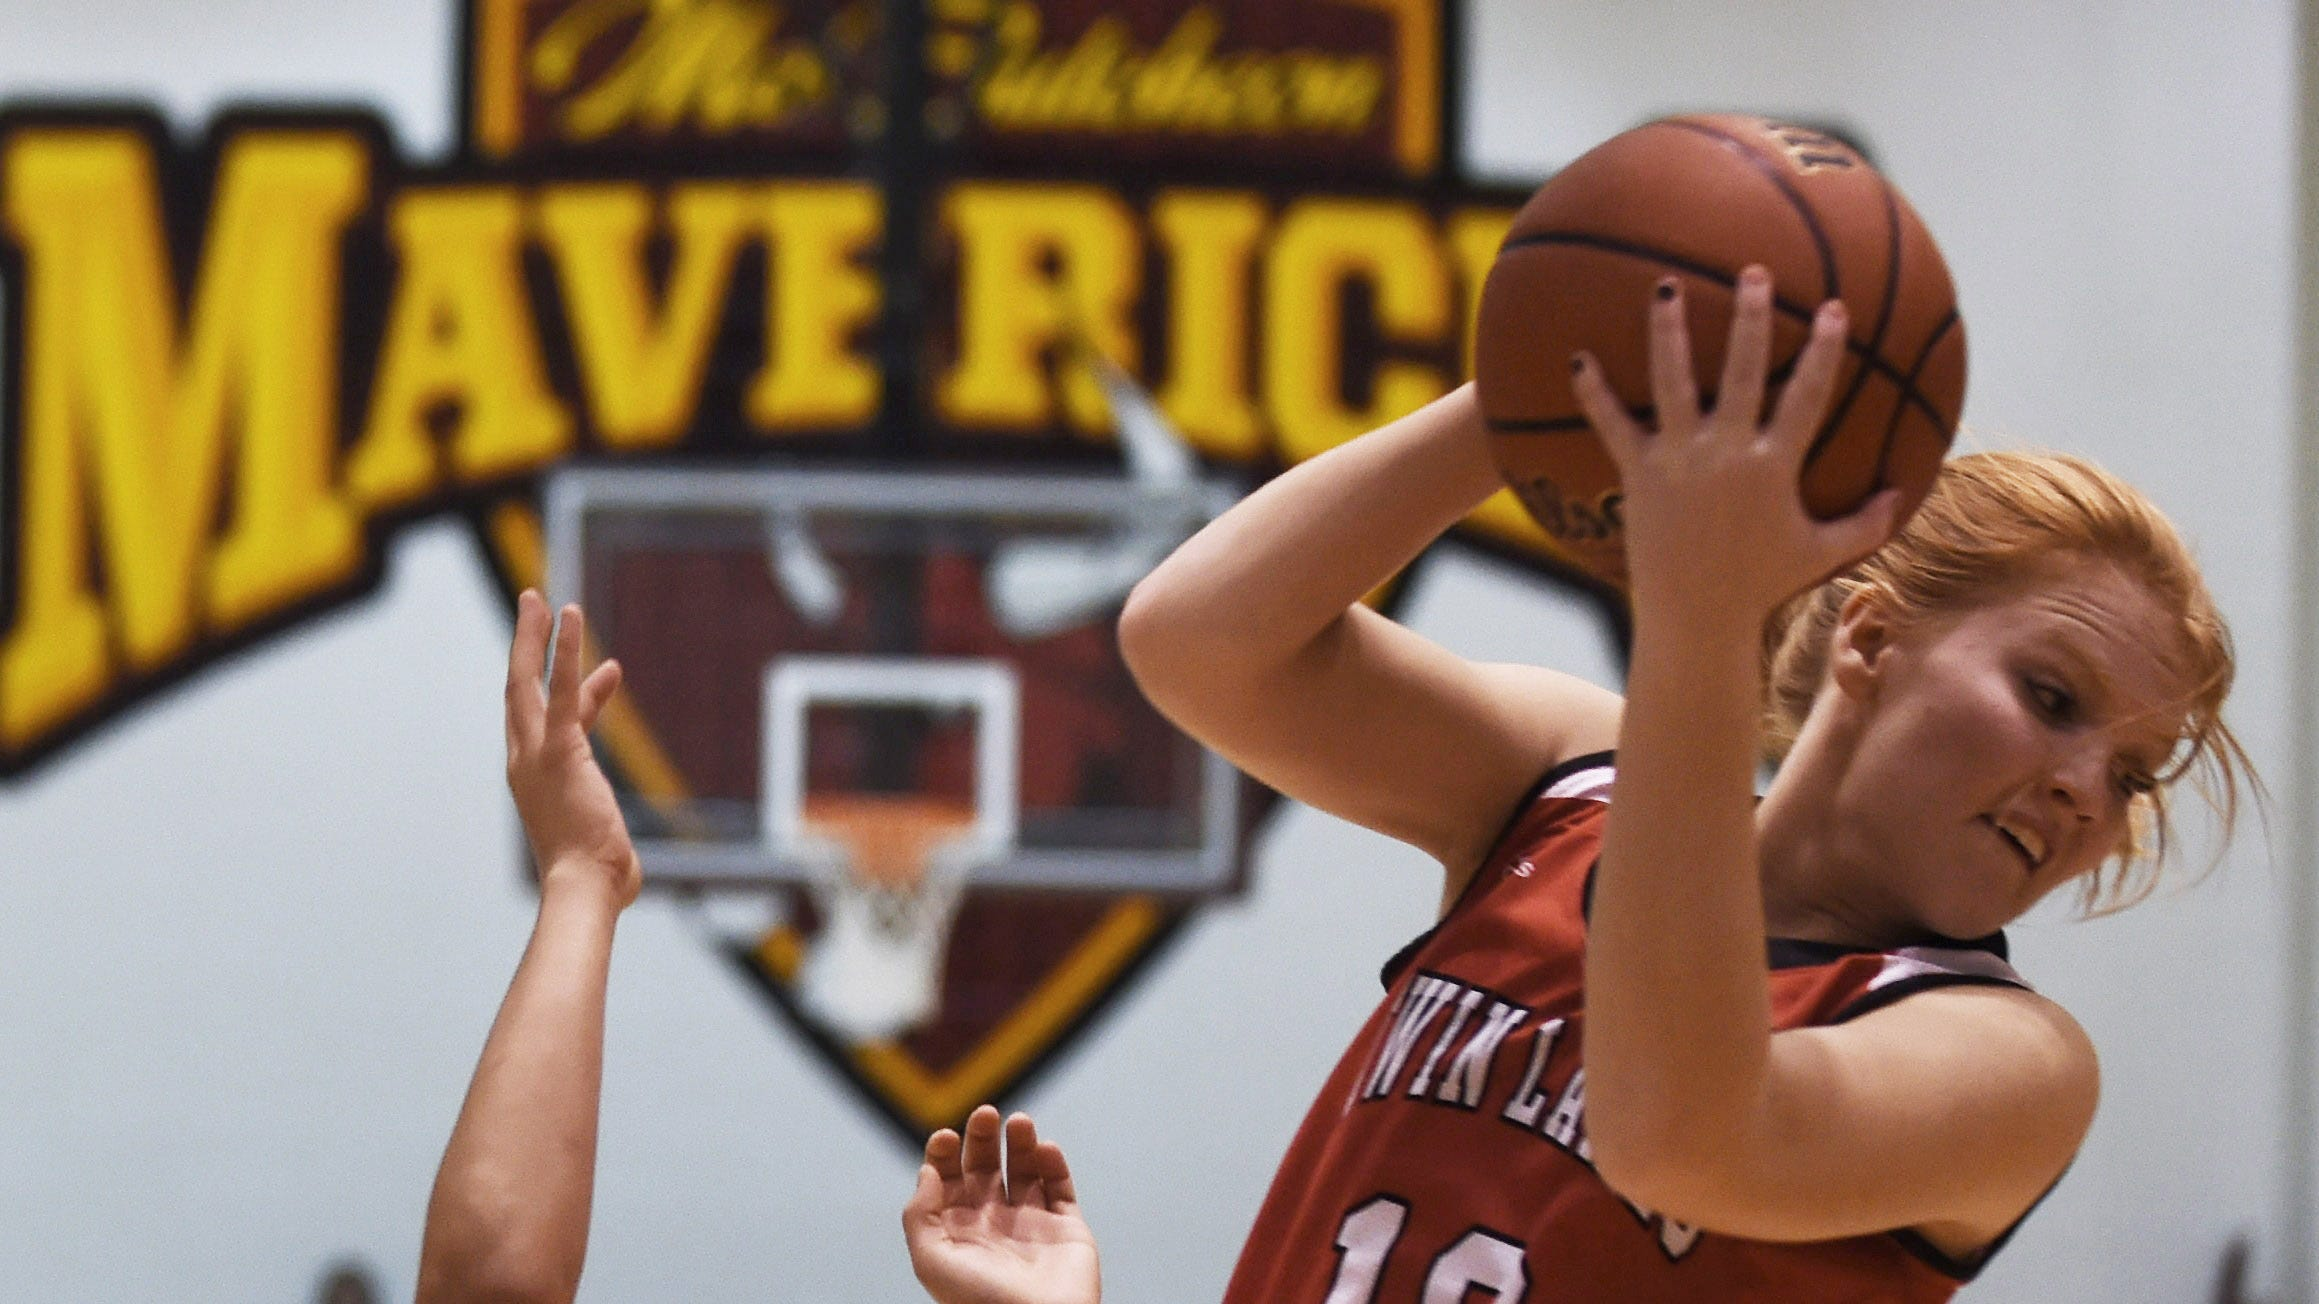 Action from Monday night's Hoops Classic game between McCutcheon and Twin Lakes.